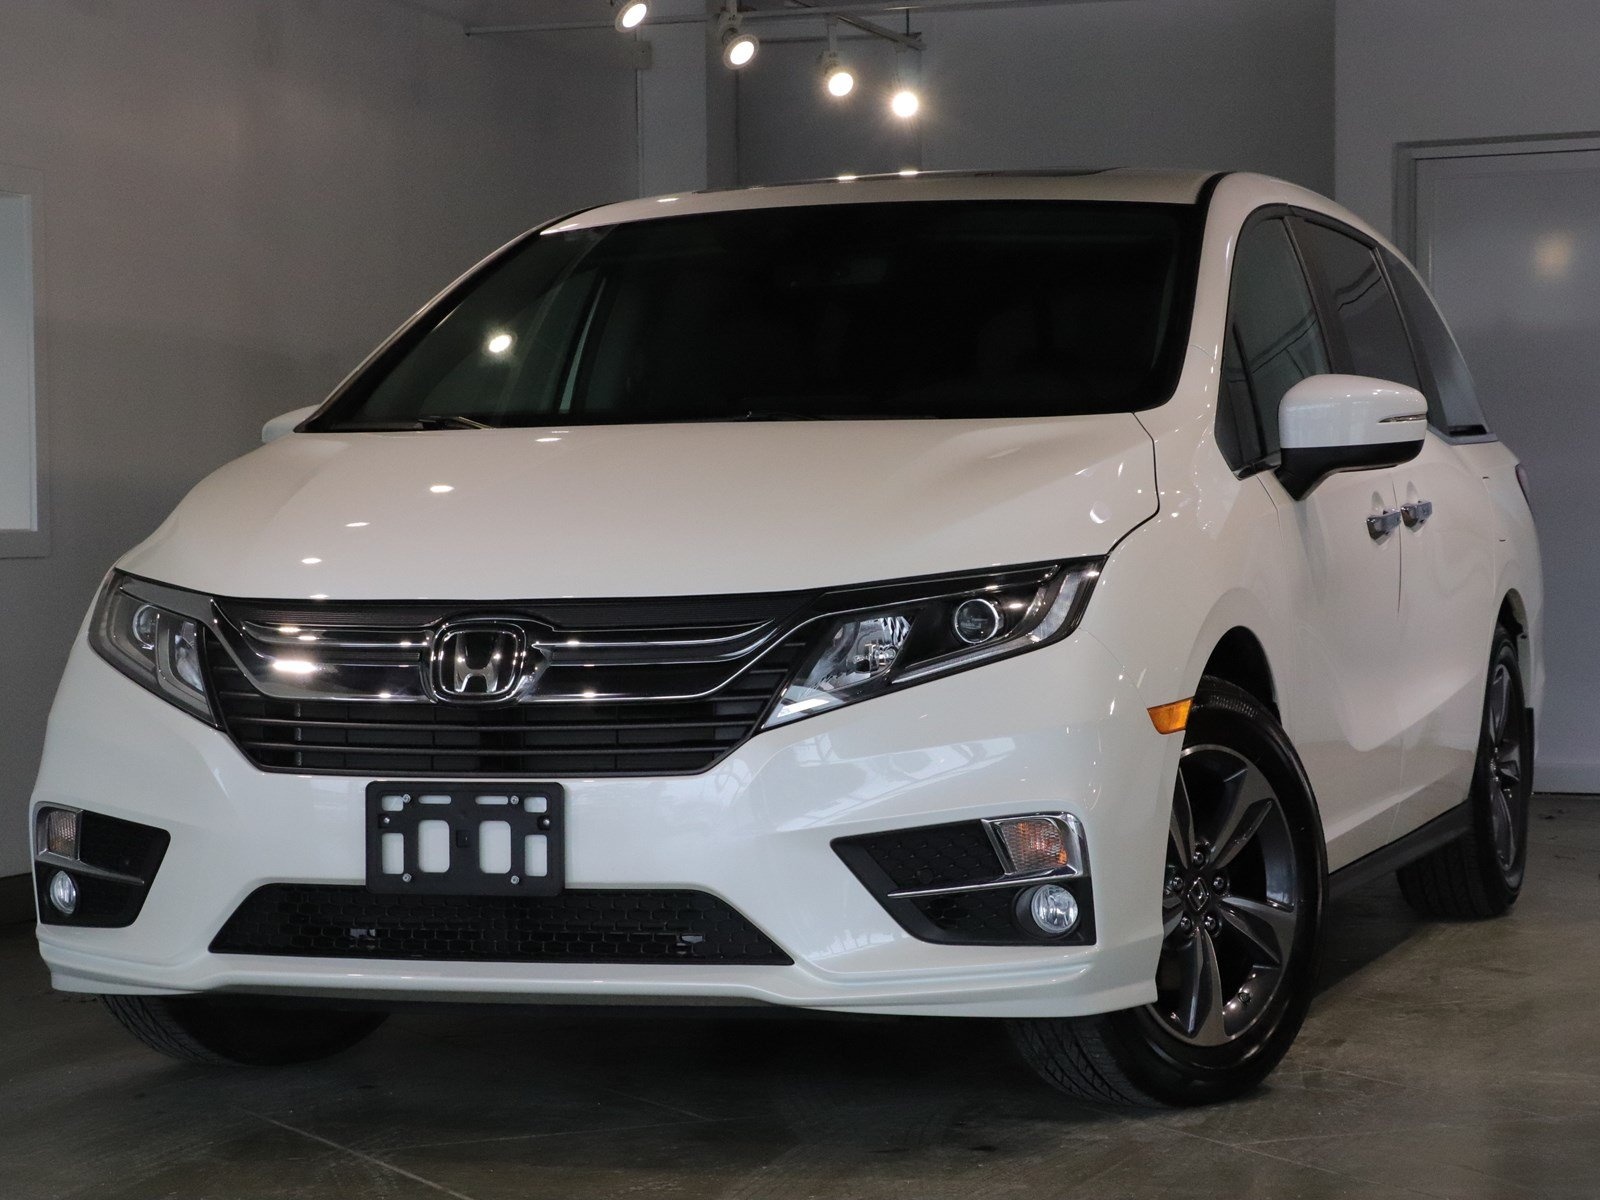 Photo Pre-Owned 2018 Honda Odyssey EX-L - ROAD TRIP READY COMFORTABLE FWD Mini-van, Passenger